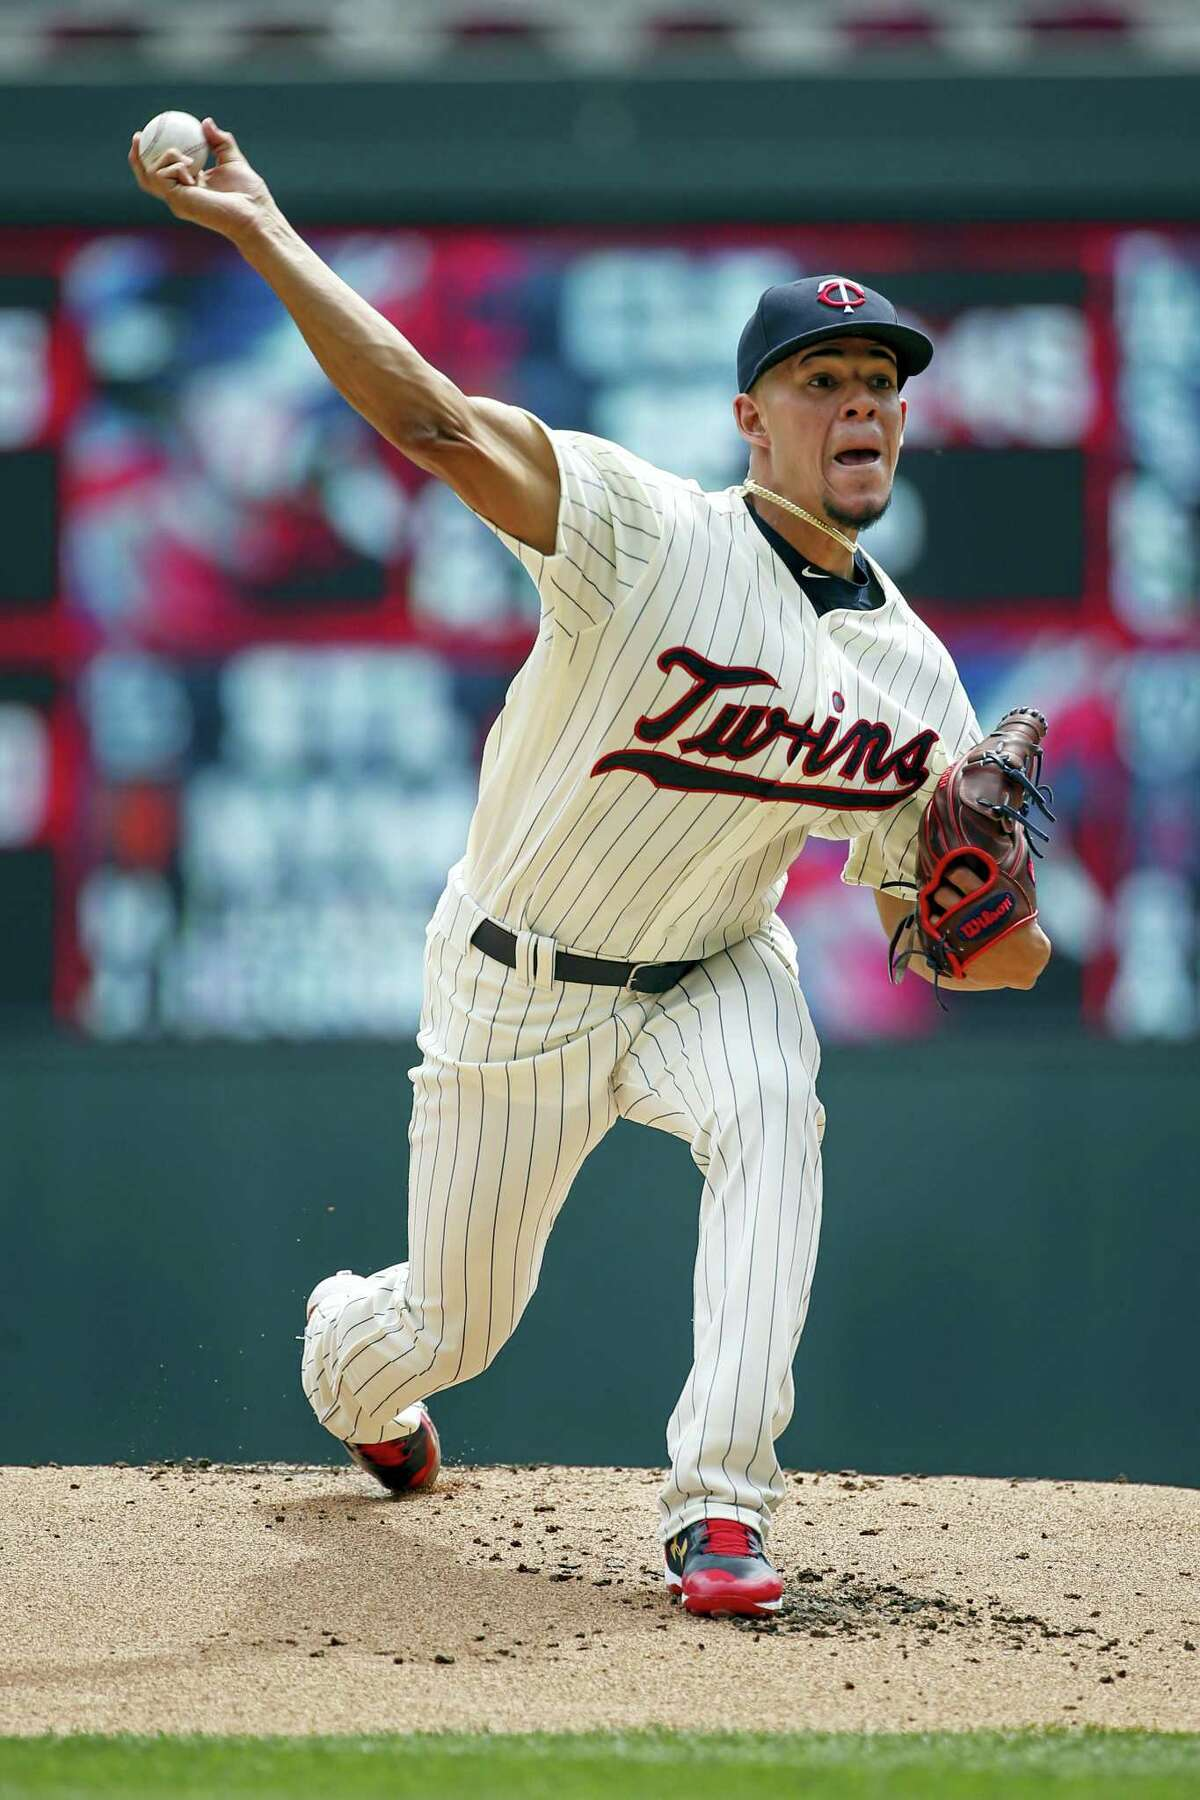 Minnesota Twins starting pitcher Jose Berrios throws to the New York Yankees in the first inning of a baseball game on Wednesday, in Minneapolis.